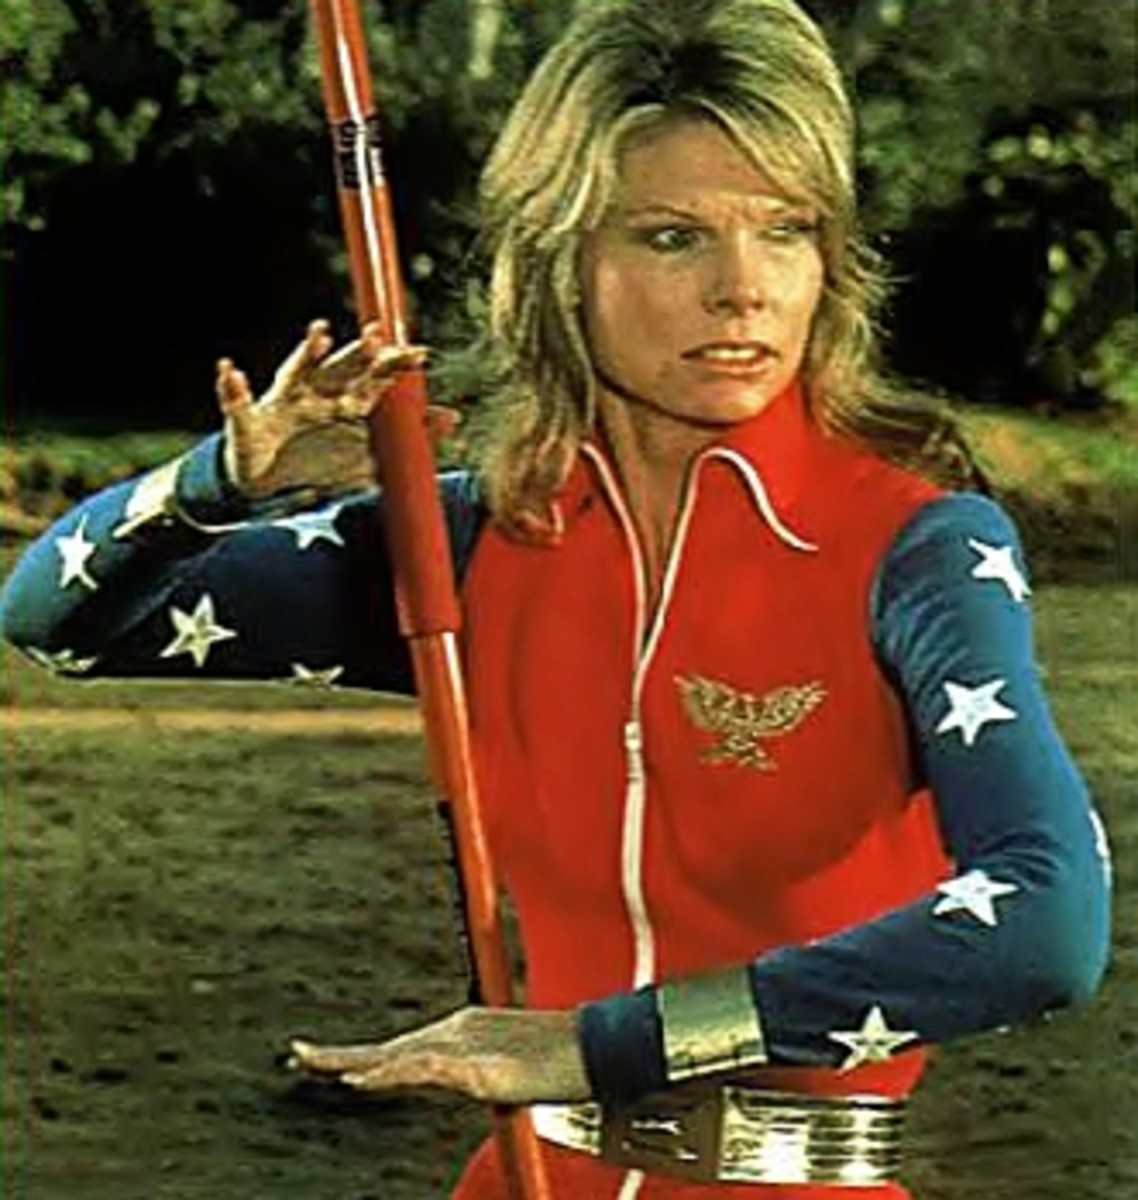 Cathy Lee Crosby as Wonder Woman in made for TV movie (1974)